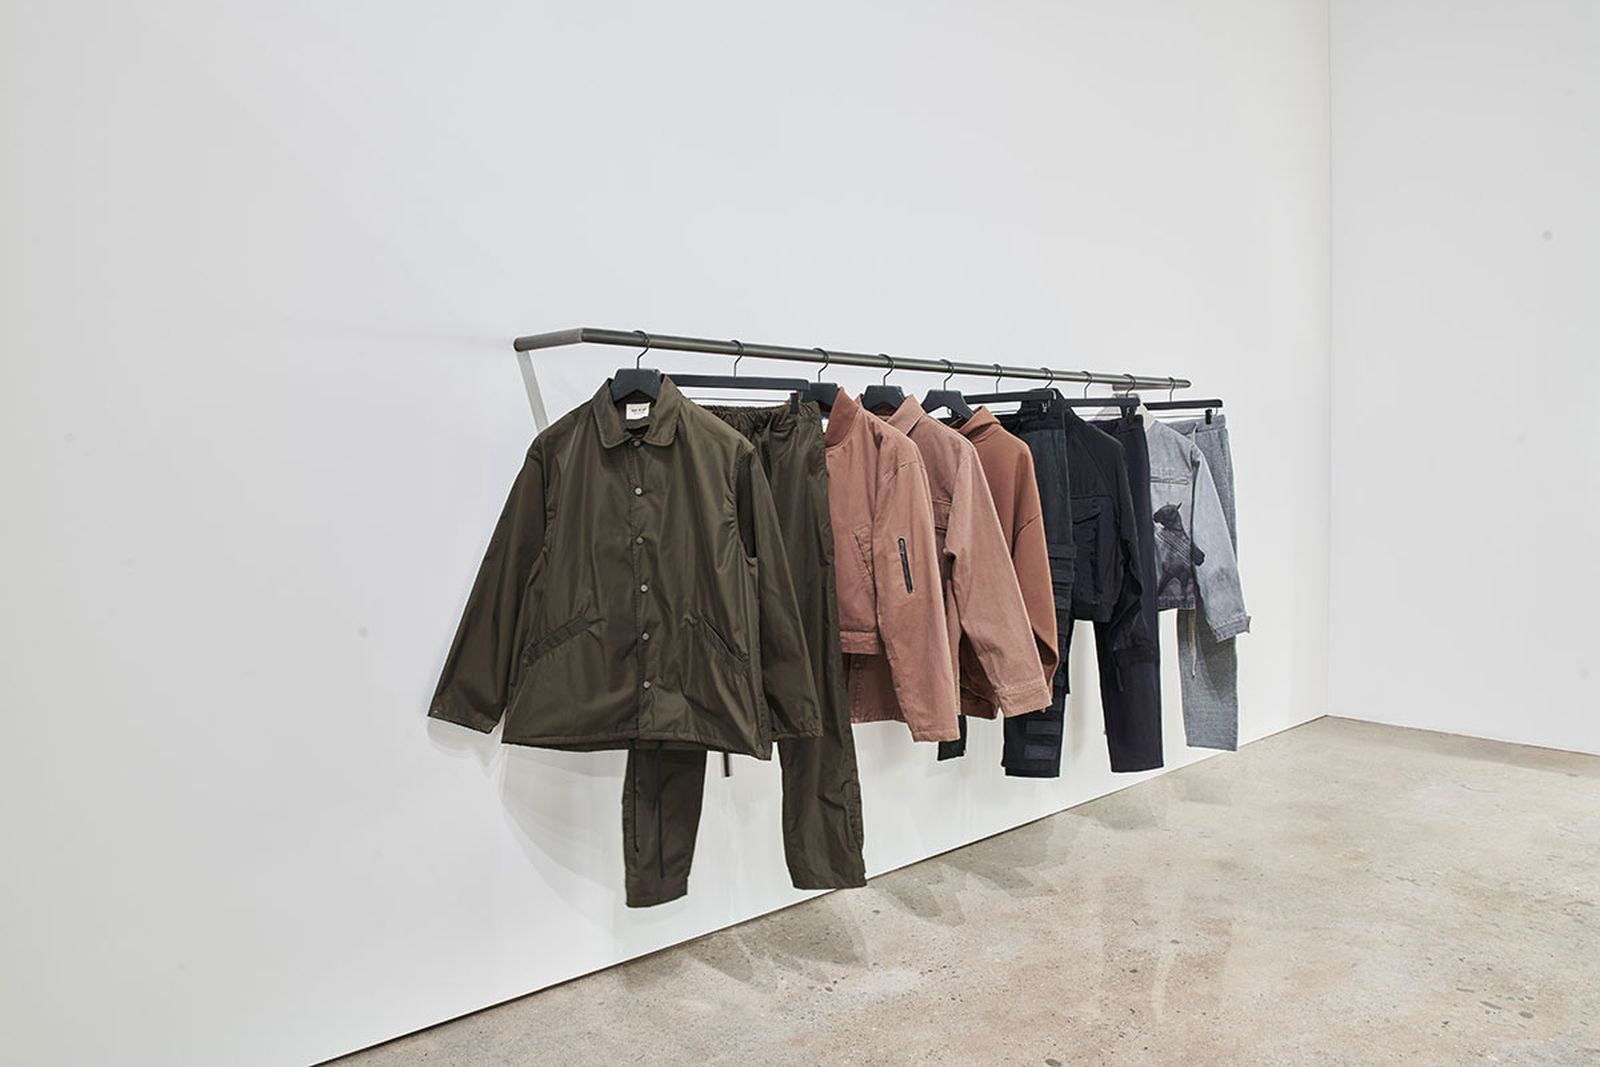 Fear of God pop-up in Downtown Los Angeles